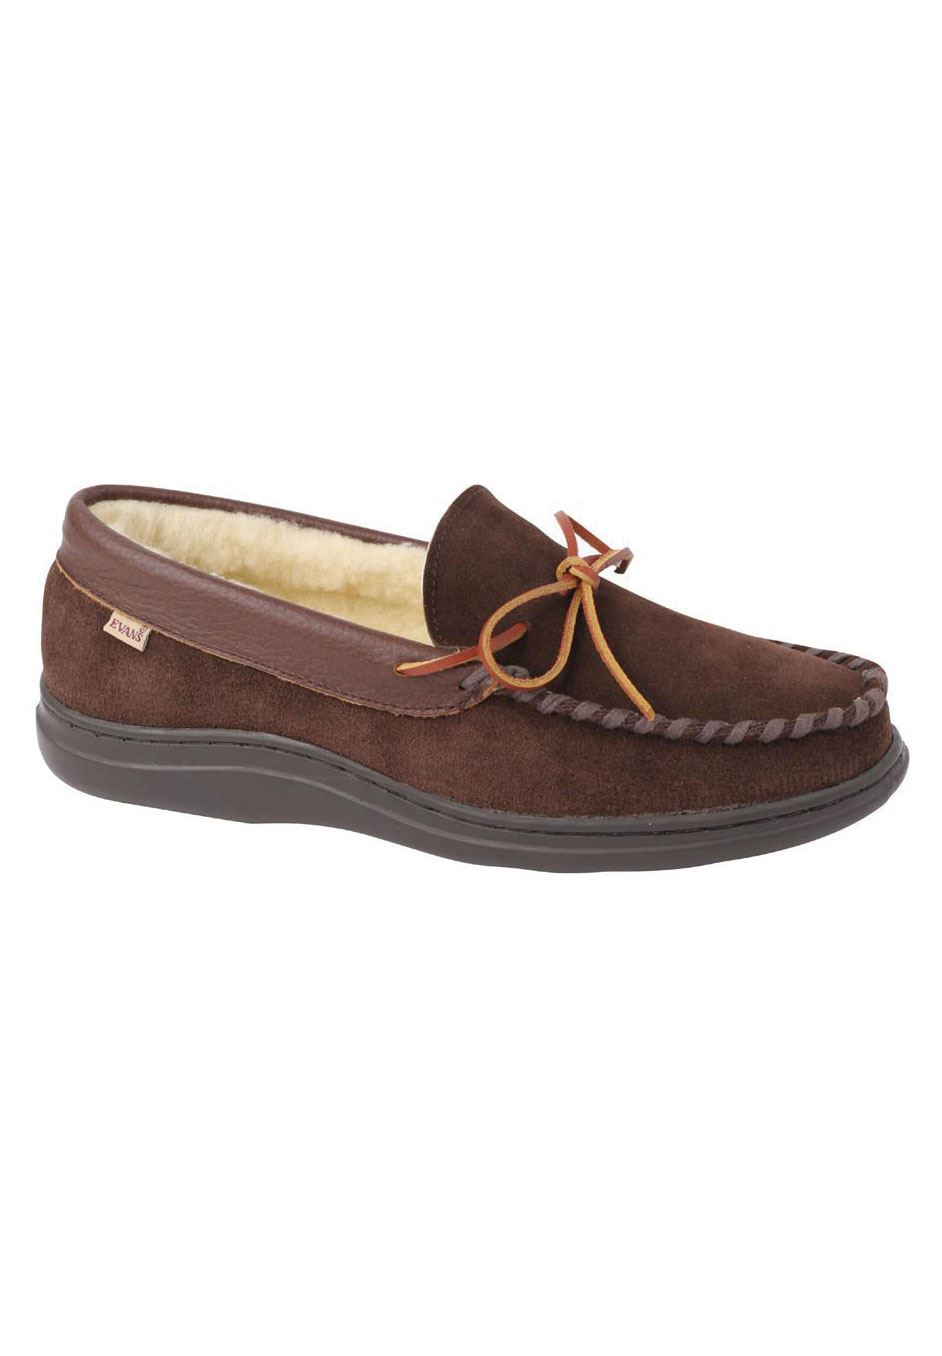 L.B. Evans Atlin Boa Lined Moccasin Slippers,